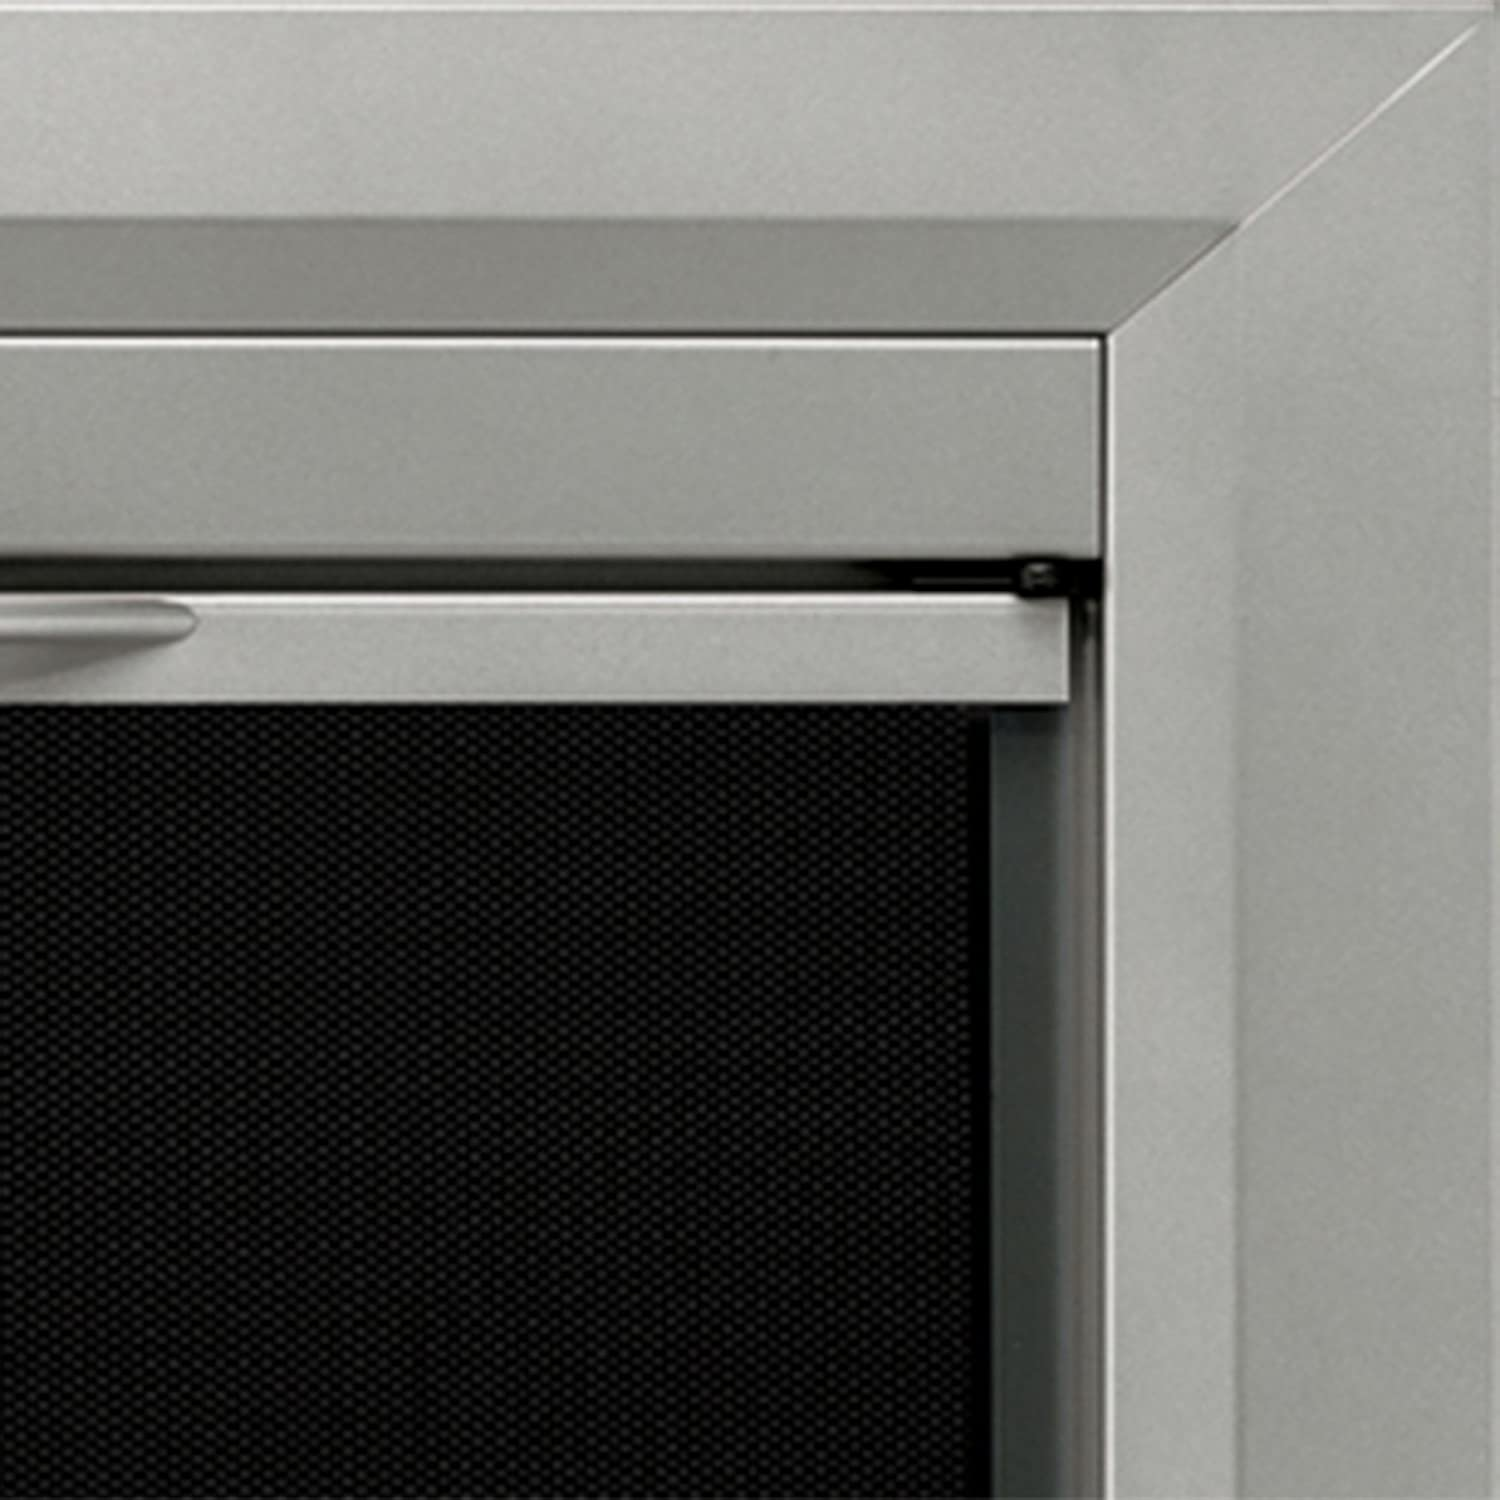 amazon com pleasant hearth cb 3300 colby fireplace glass door